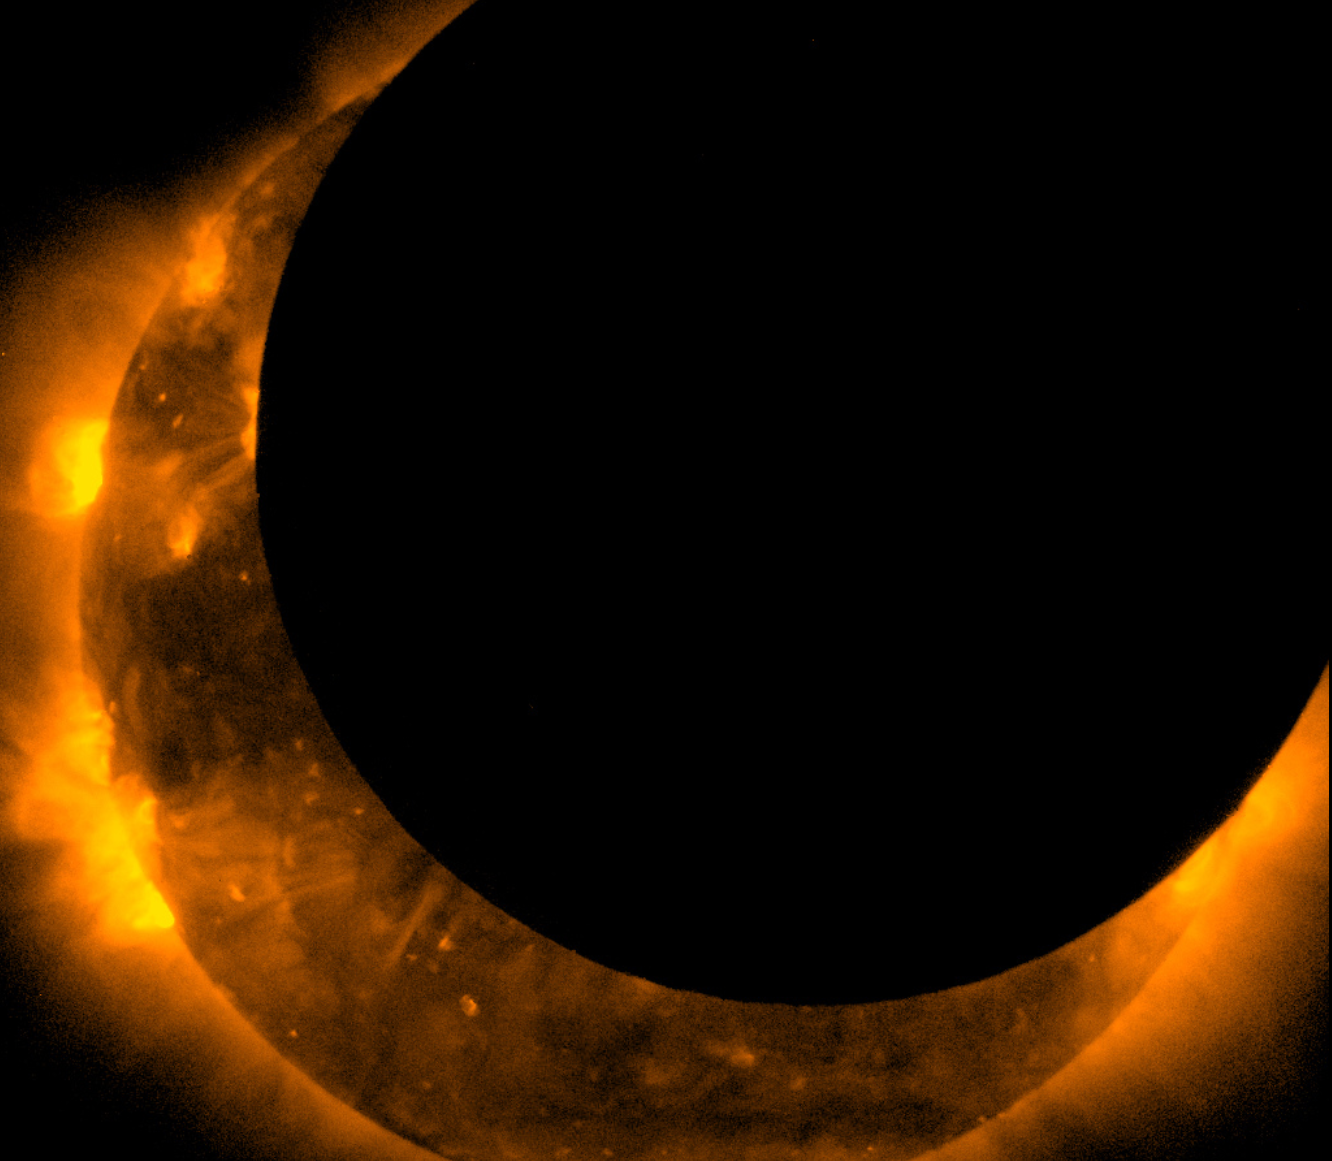 Hinode Spacecraft Views Solar Eclipse 20 May 2012